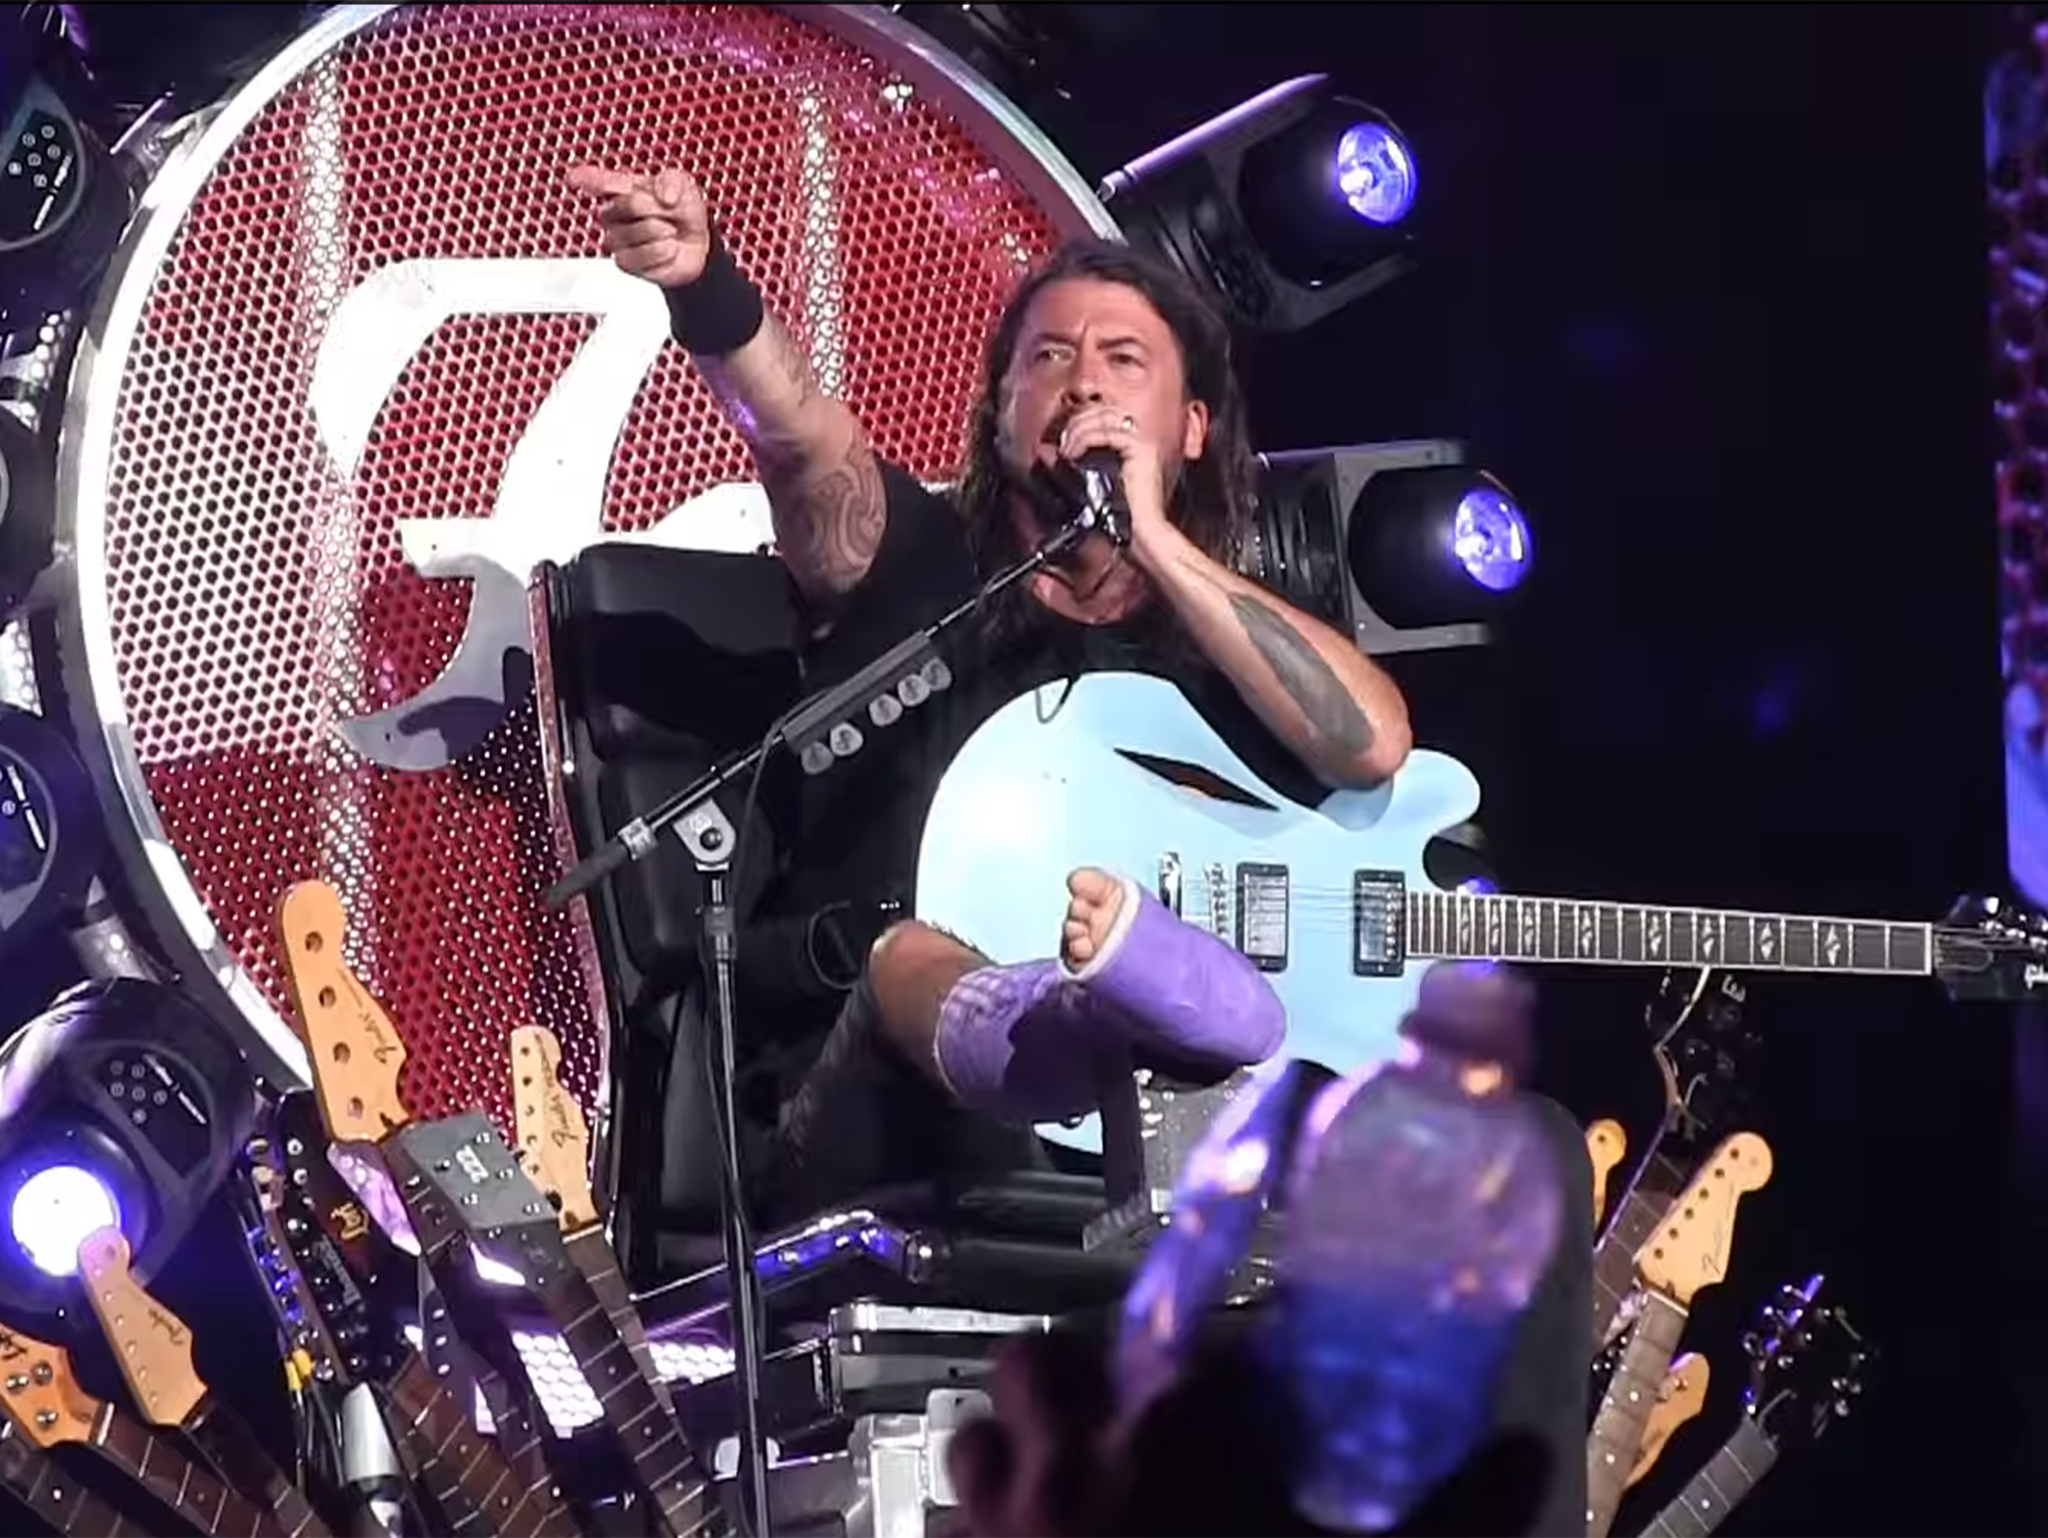 foo-fighters-under-pressure-con-roger-taylor-video